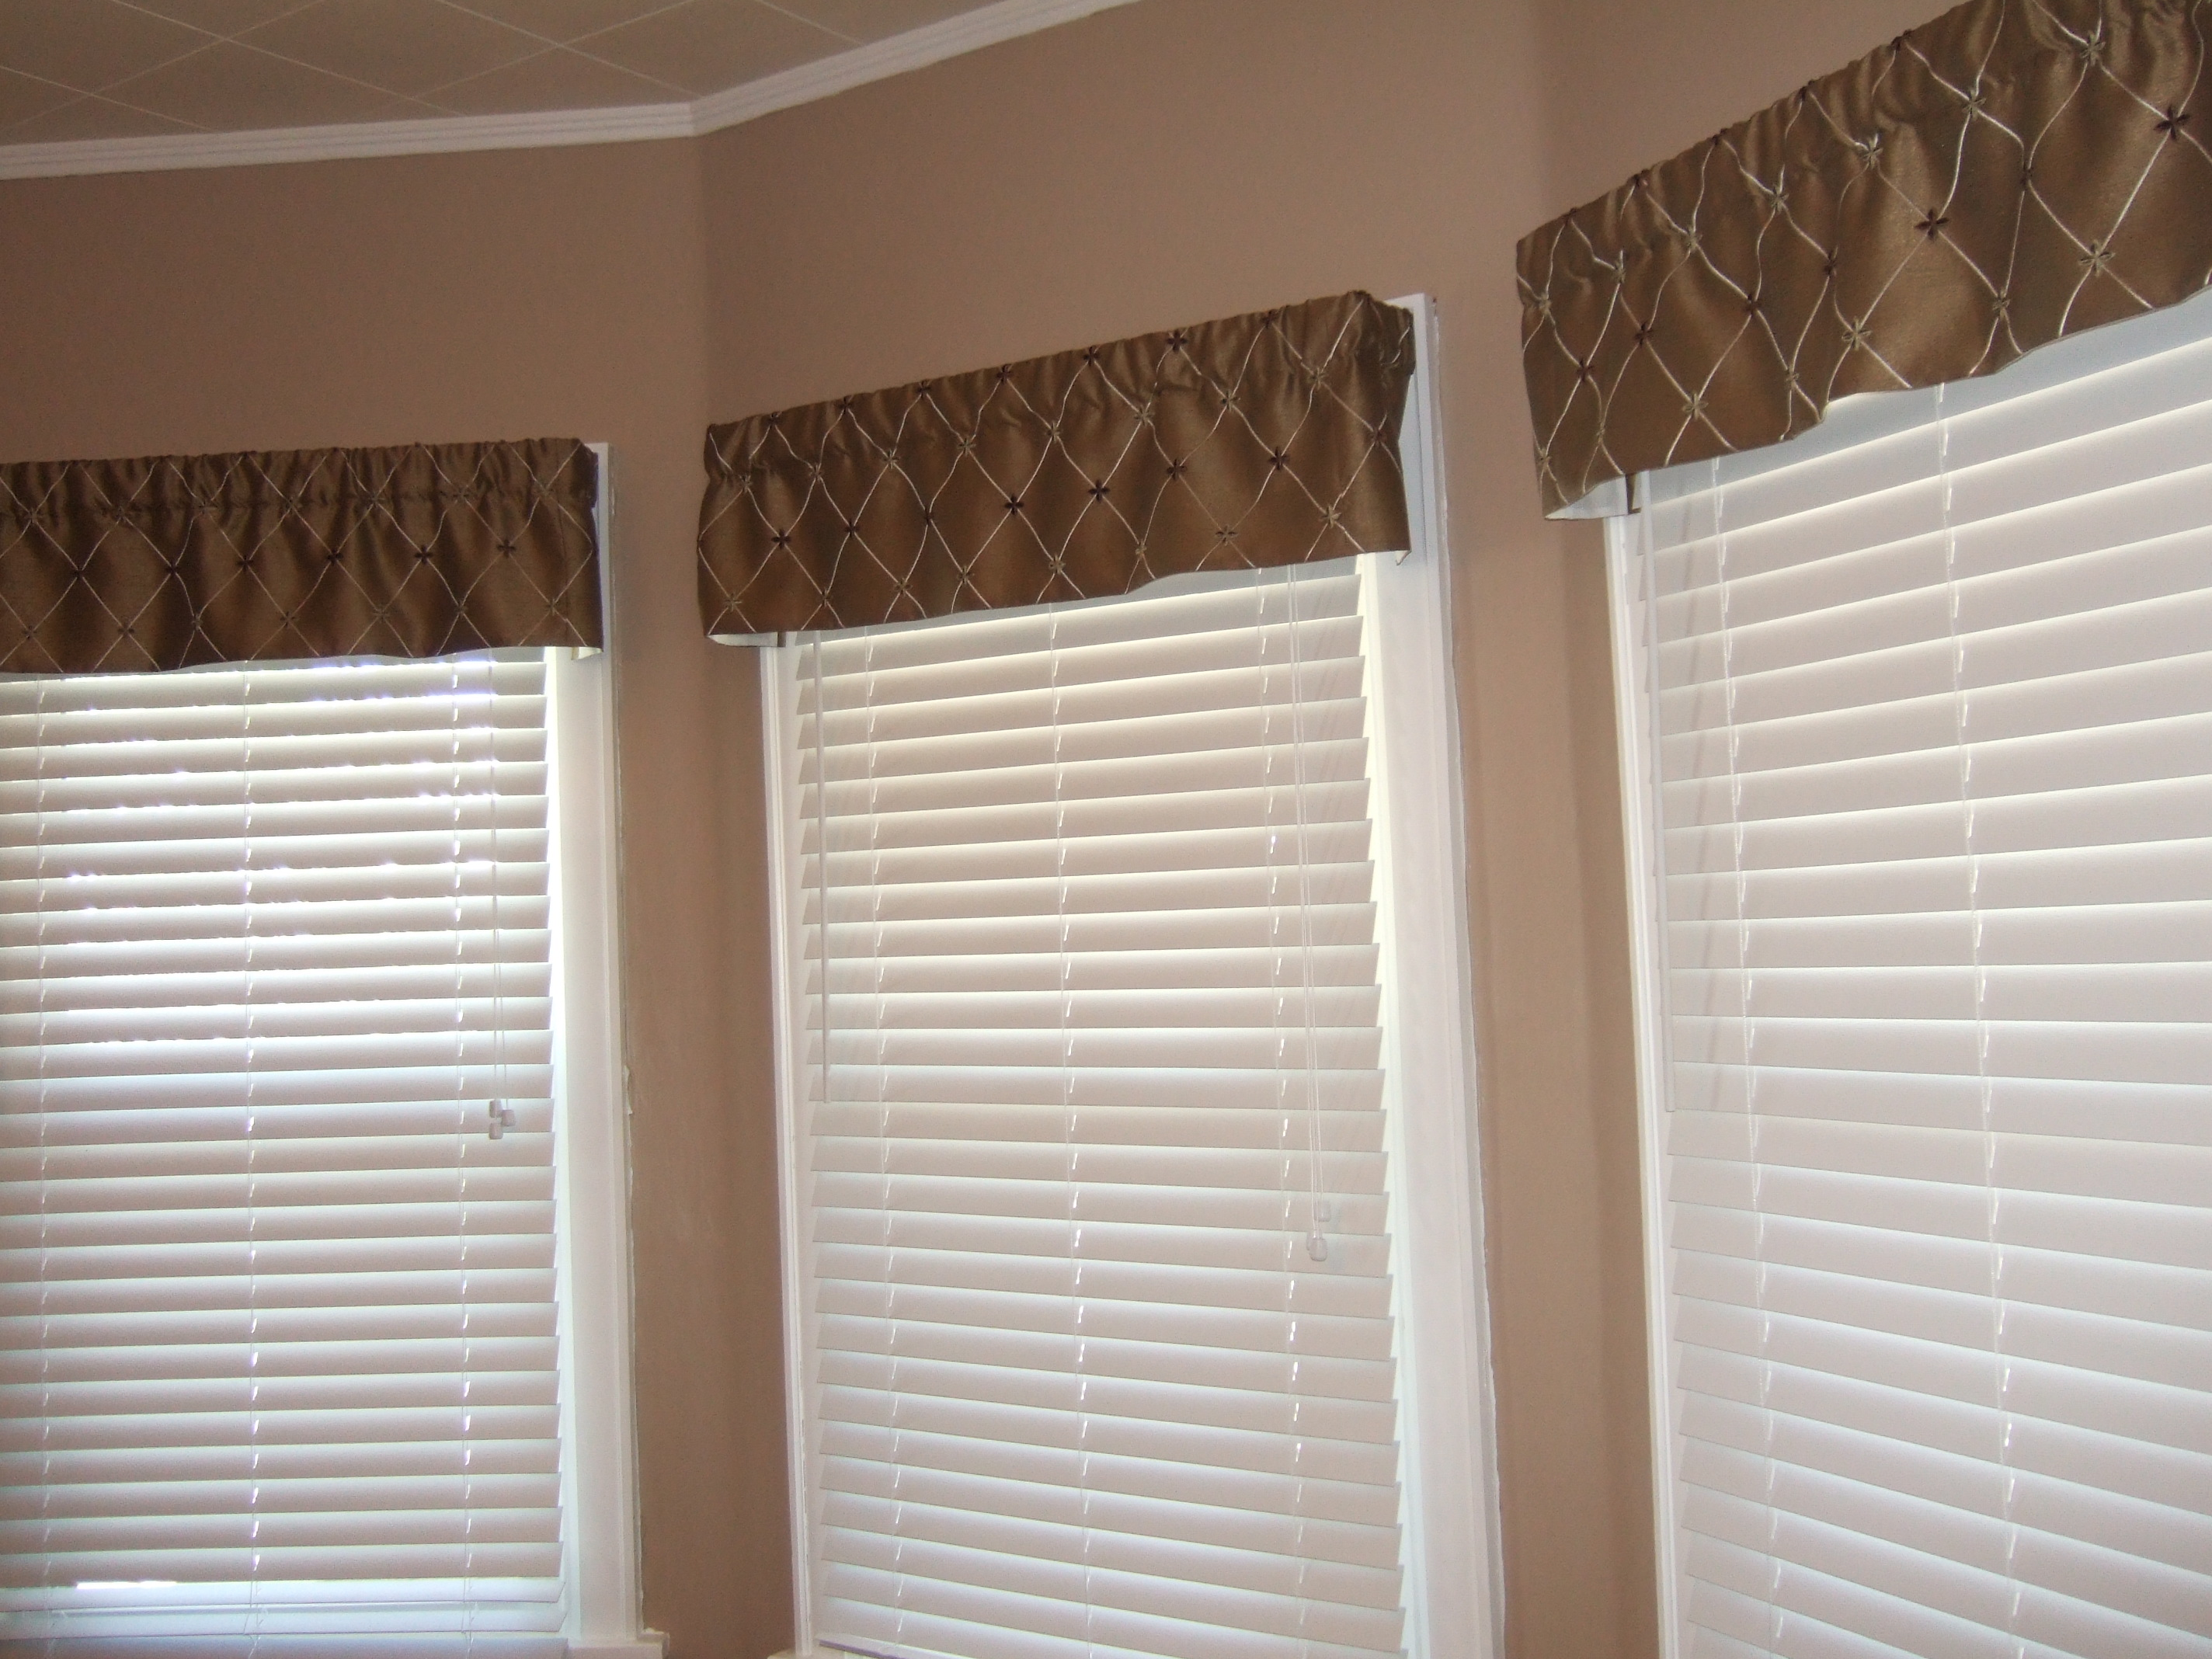 Breakfast Nook Curtains Breakfast Nook Valances Hoping In God